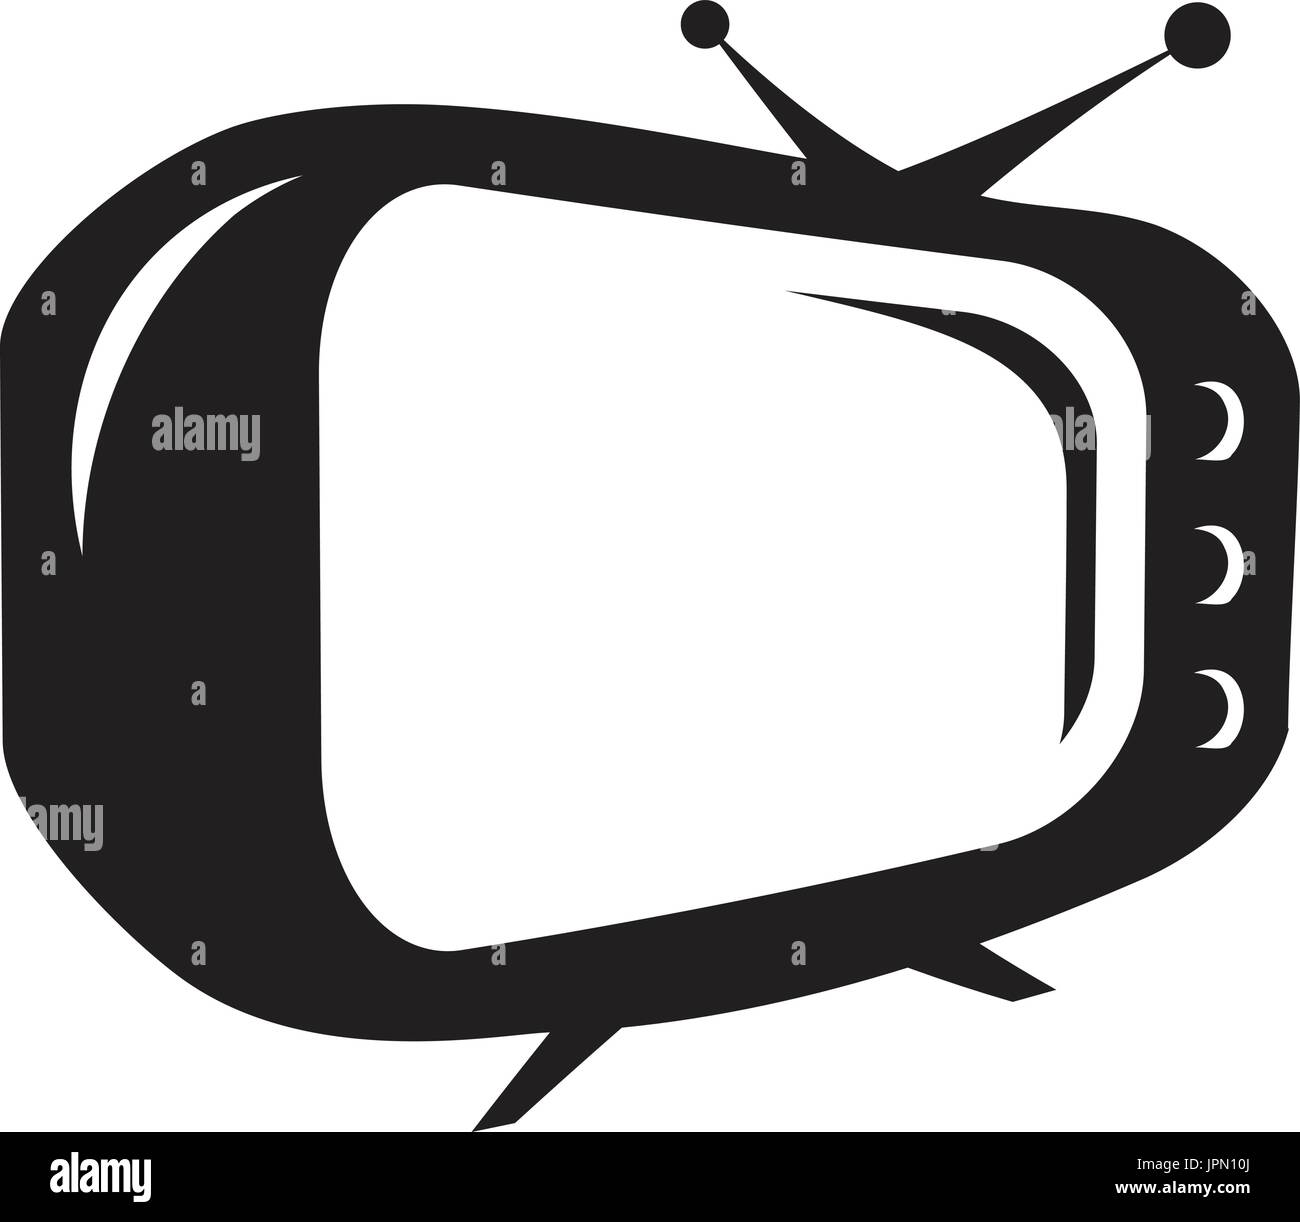 old TV icon, isolated on white background Stock Vector Art